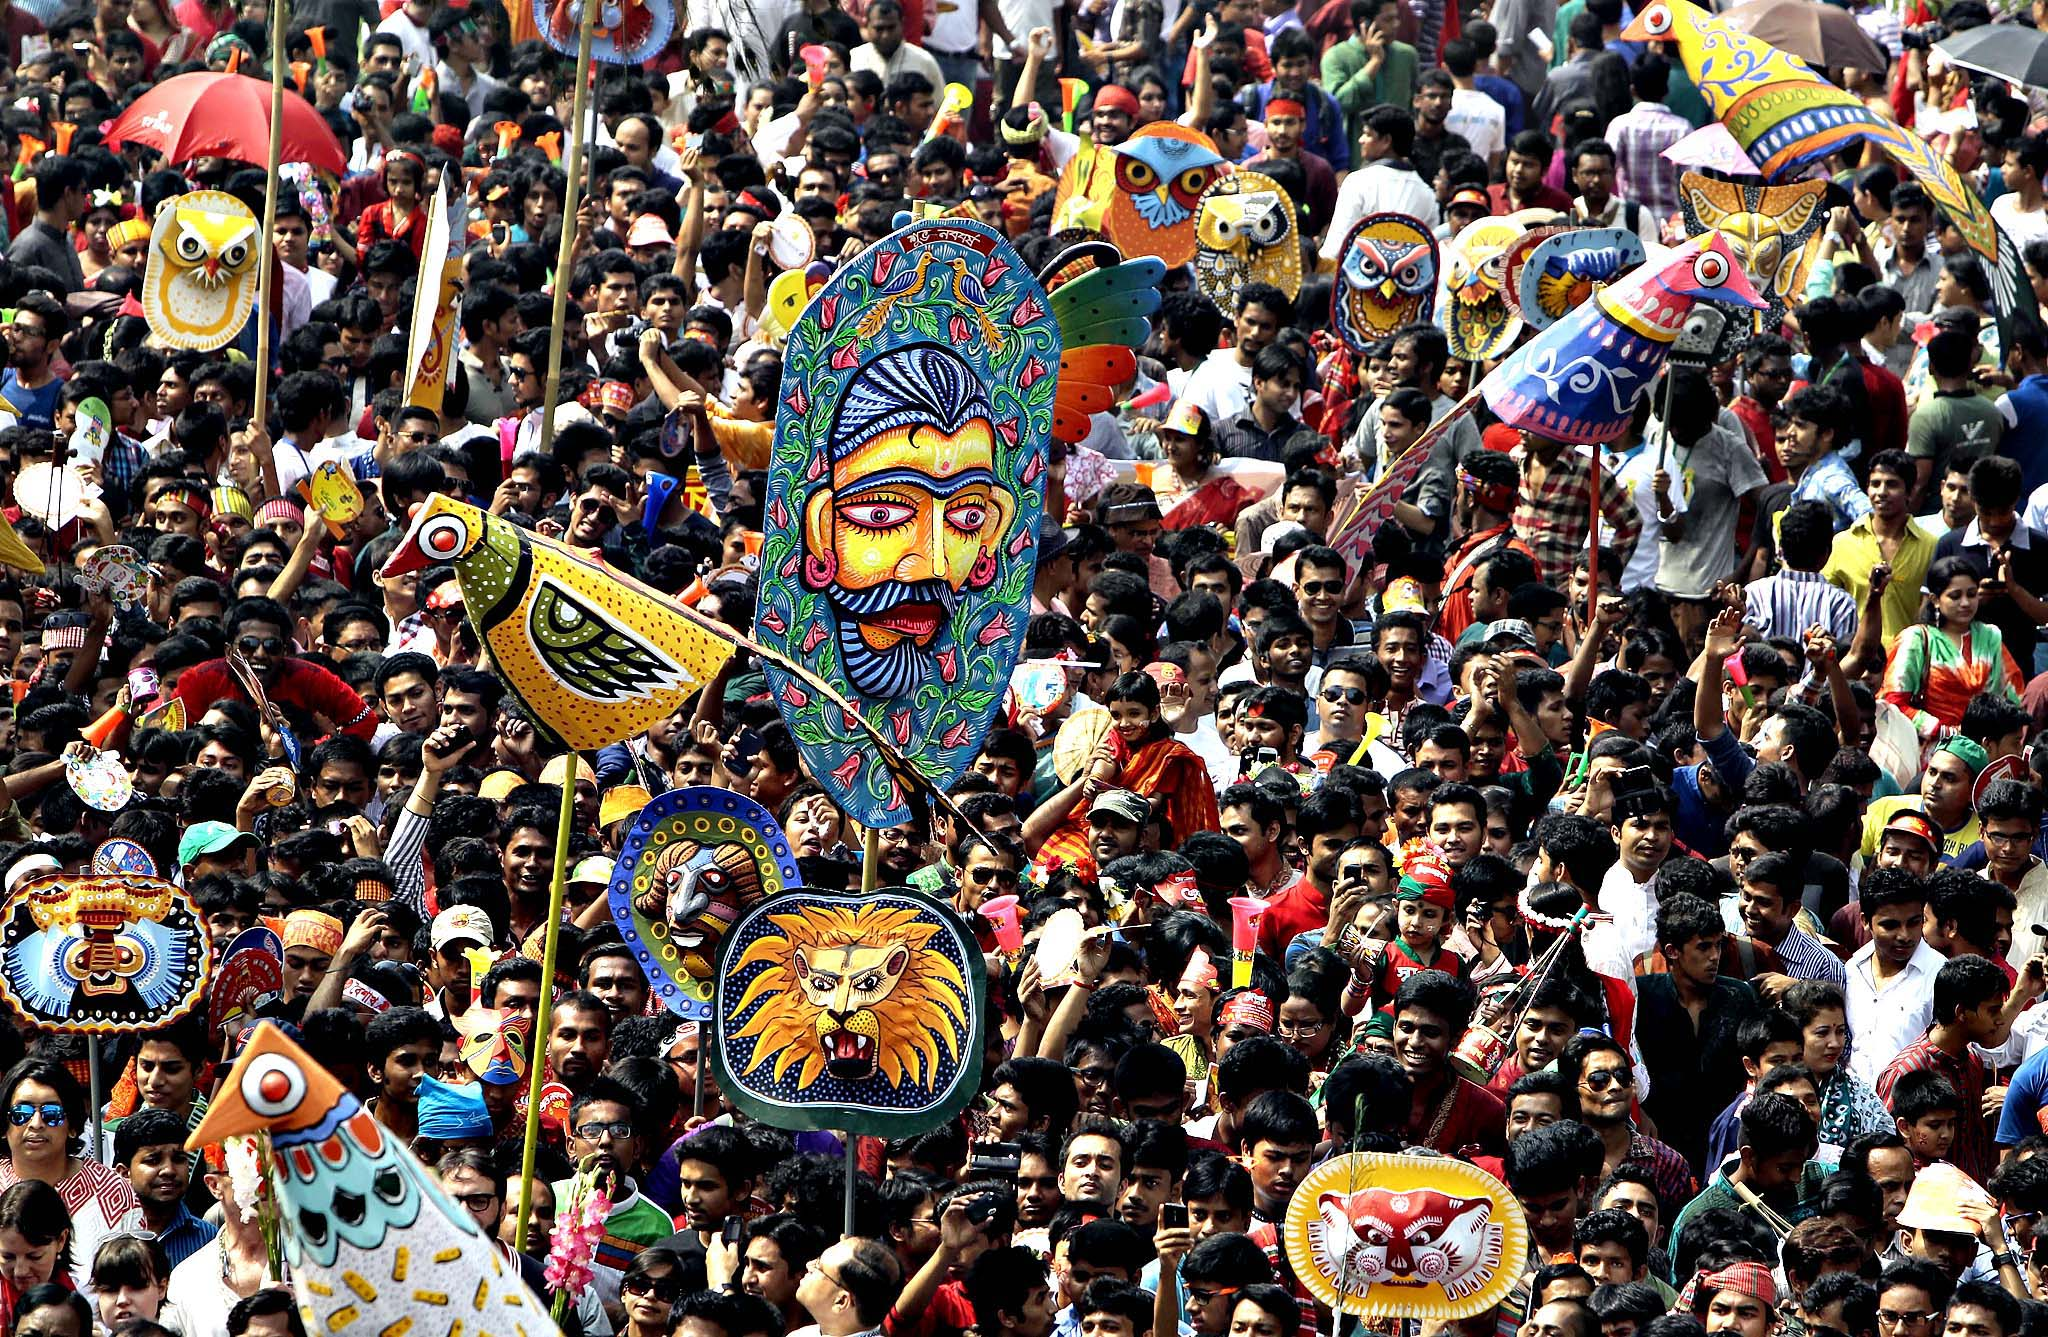 Bangladeshi people participate in a parade to celebrate the first day of the Bangla New Year or Pahela Baisshakh, in Dhaka, Bangladesh, Monday, April 14, 2014. Thousands of Bangladeshis on Monday celebrated their new year with fairs, concerts and rallies.